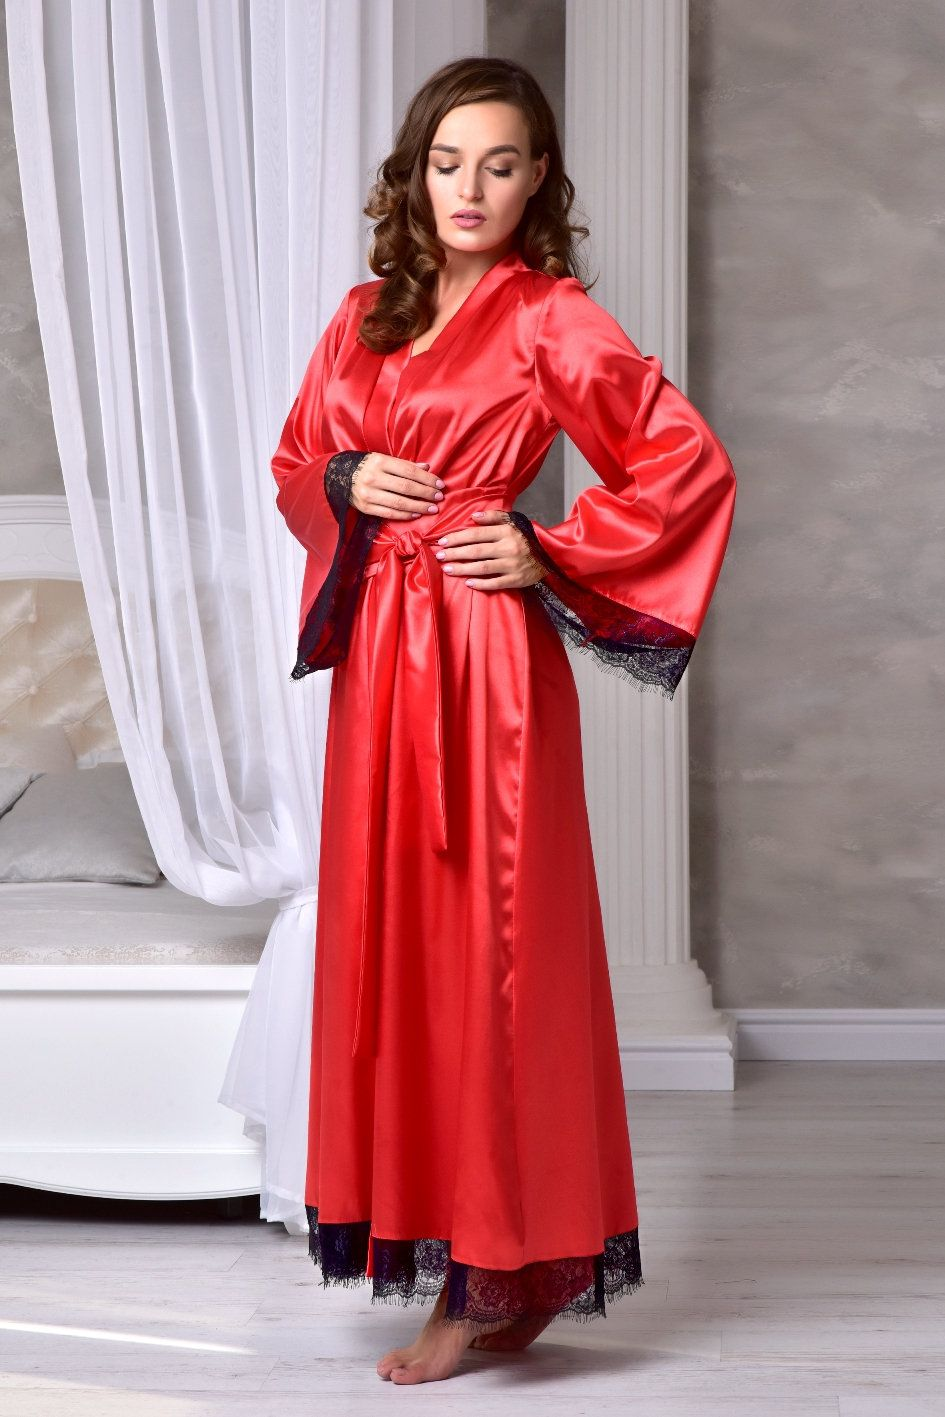 66b68d2ad5 Excited to share the latest addition to my  etsy shop  Red long bridal robe